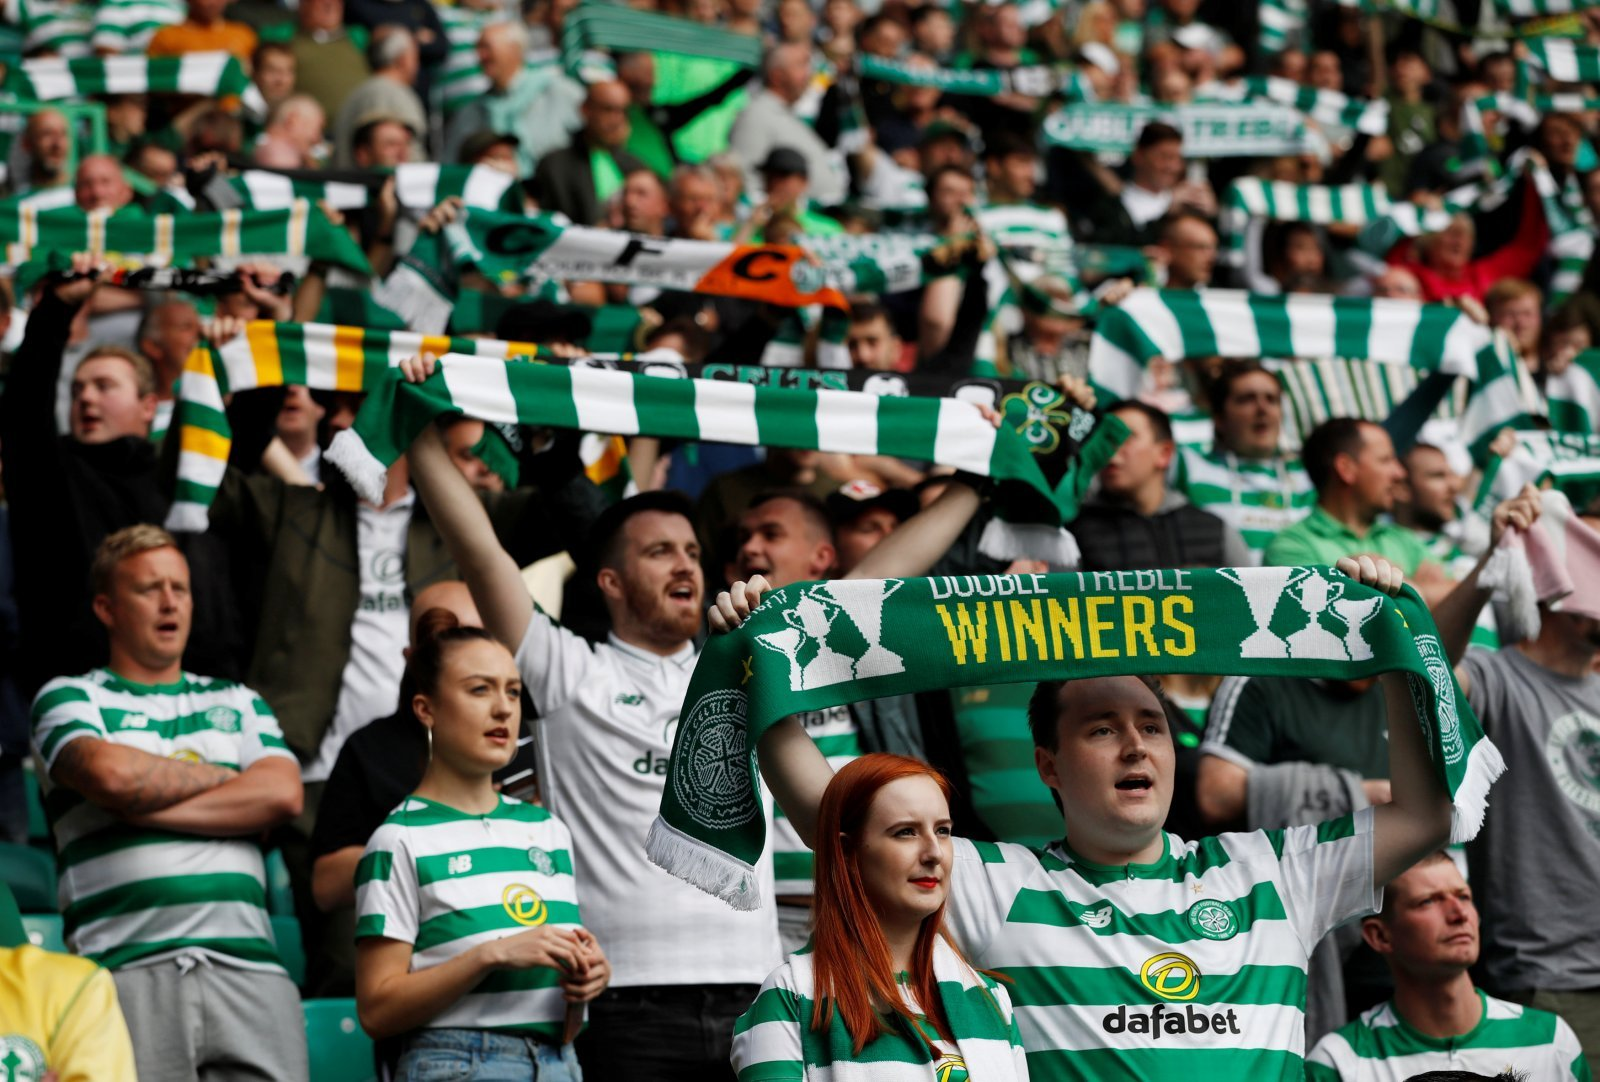 Celtic fans on Twitter keen to get back to winning ways against St Johnstone later